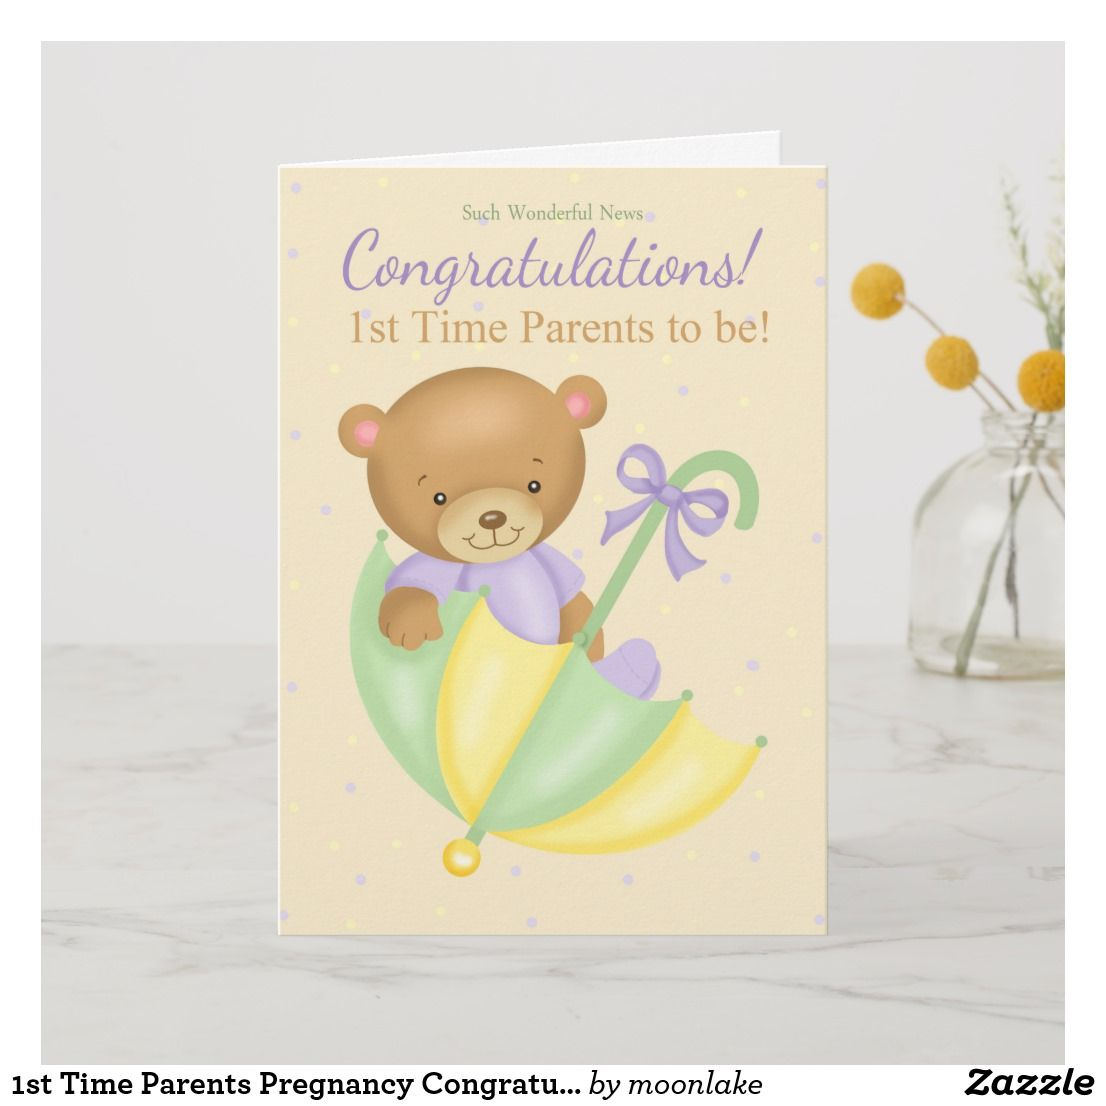 Pregnancy Card Congratulations Card Bundle of Joy Pregnancy Card Expecting Baby Expecting Card Baby Card Going to be Parents Card